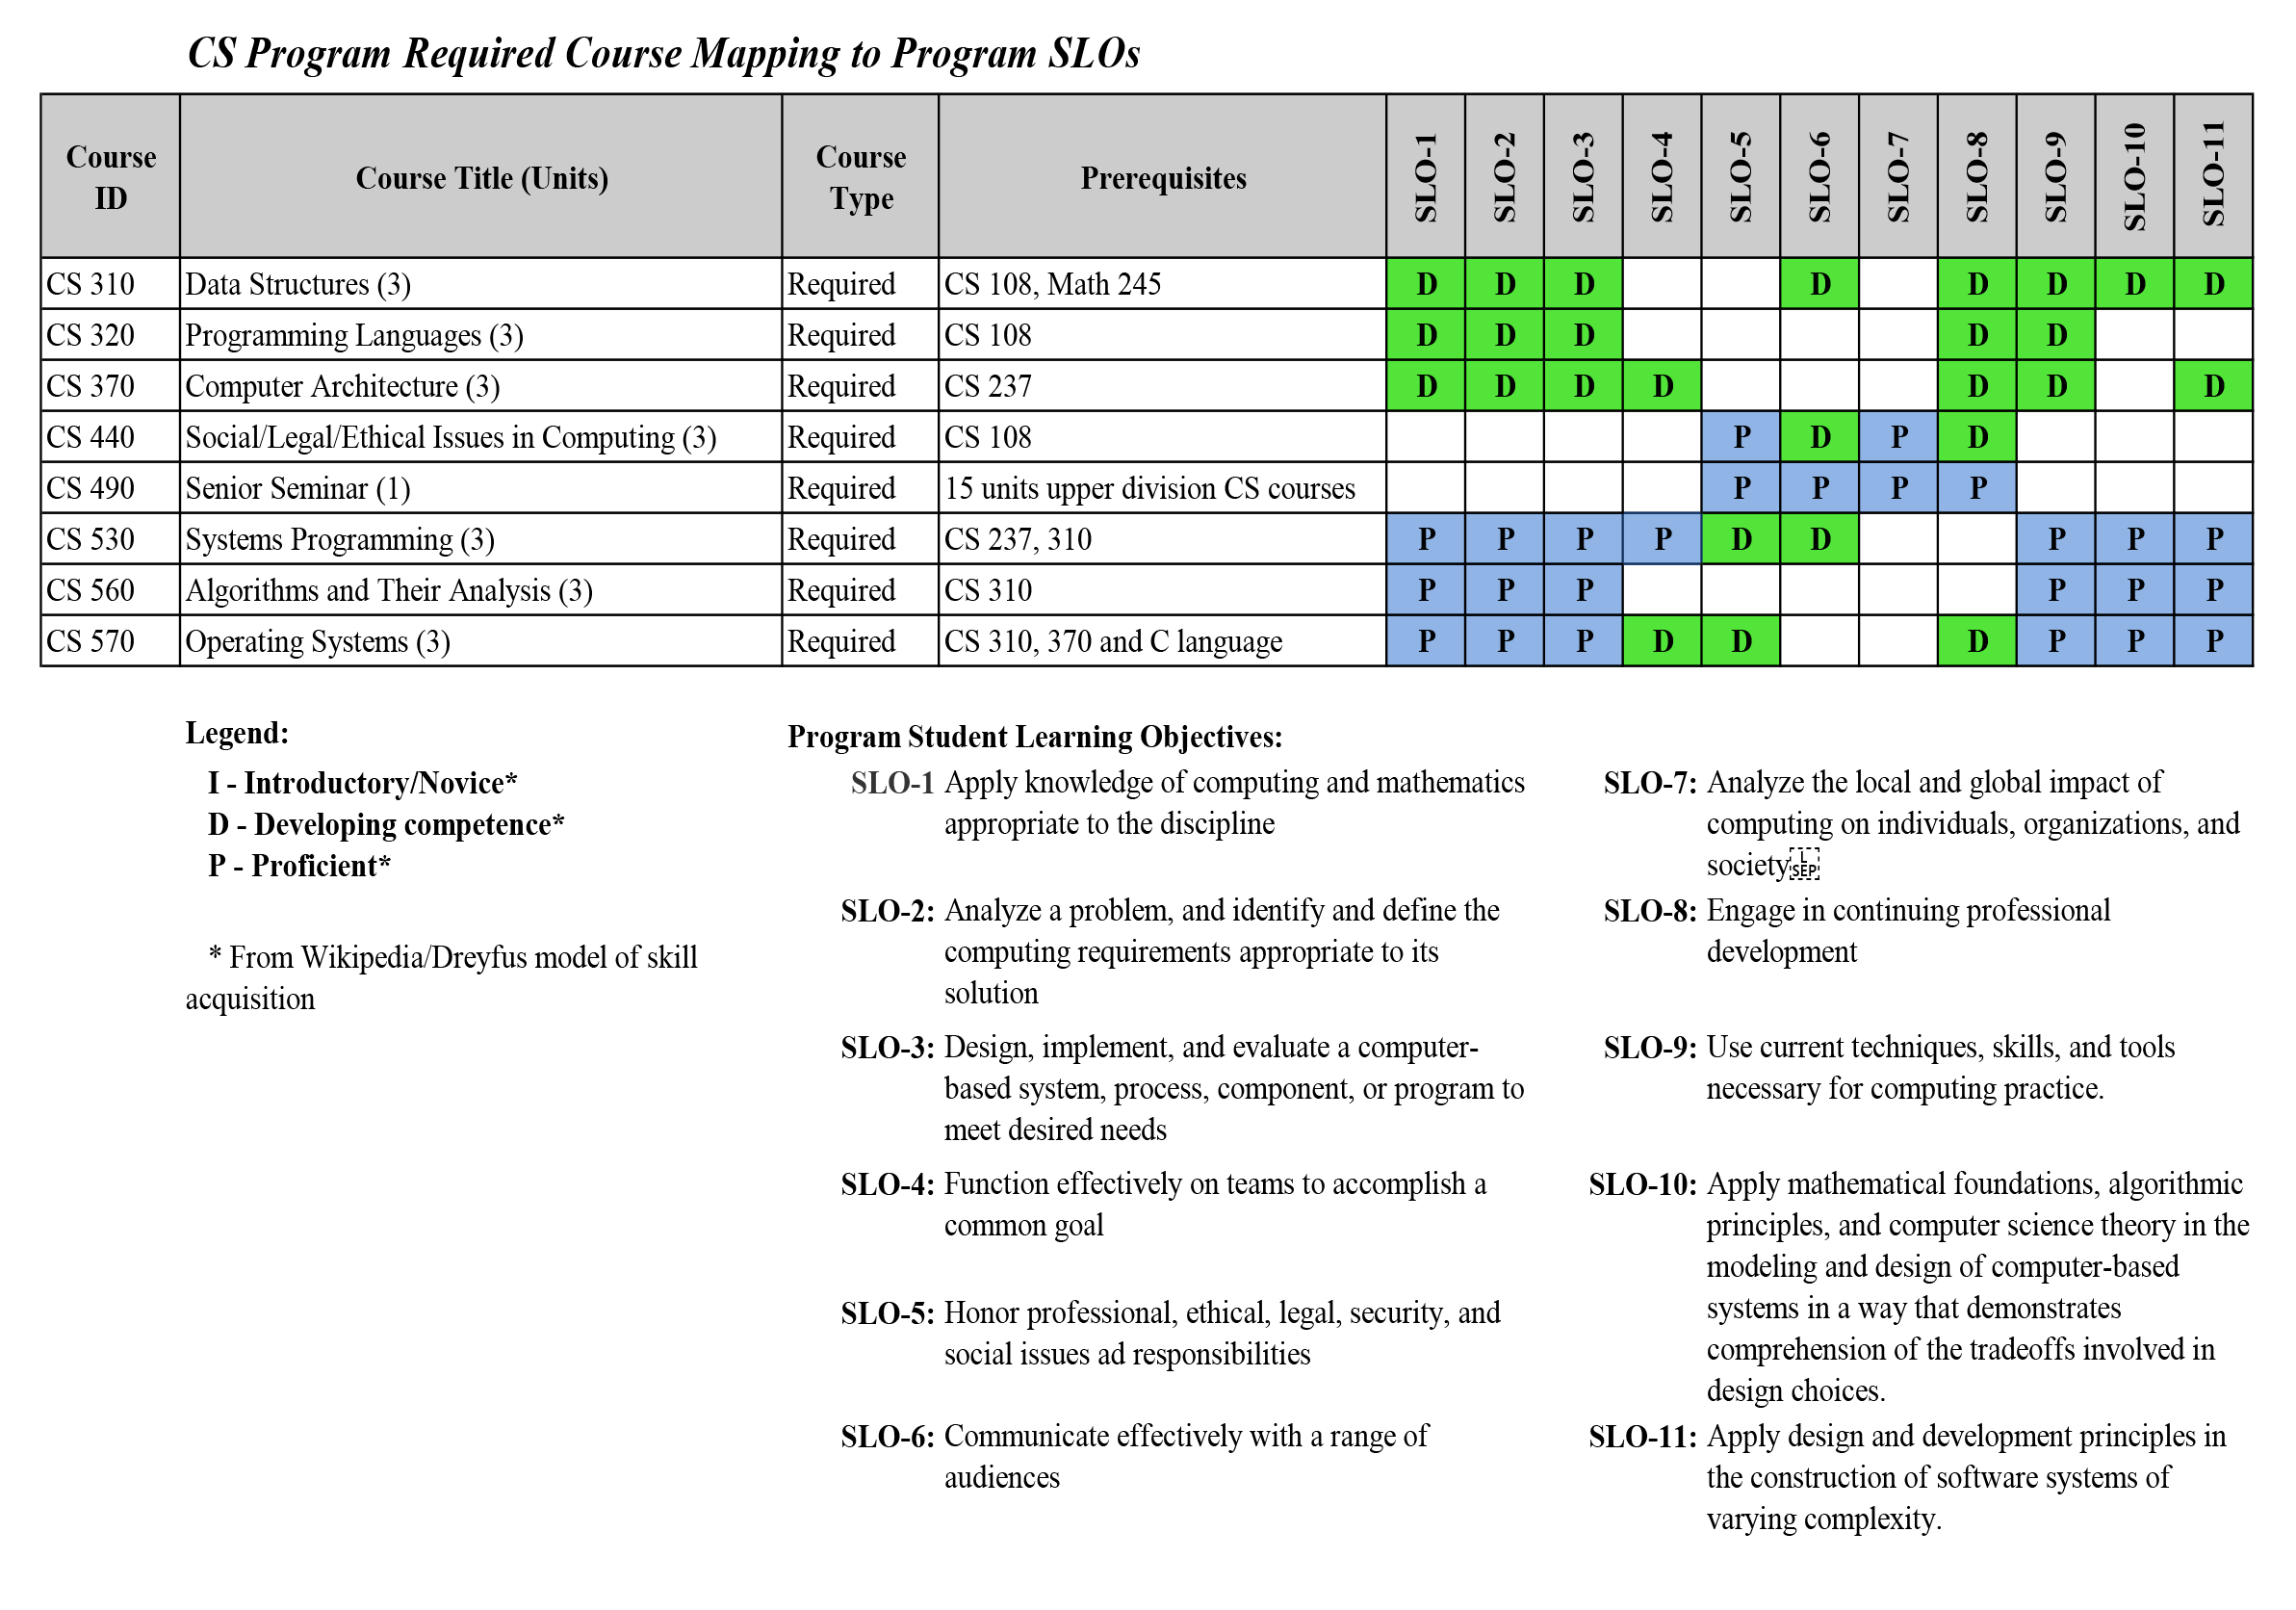 CS 2016 Required Course Outcomes Mapping